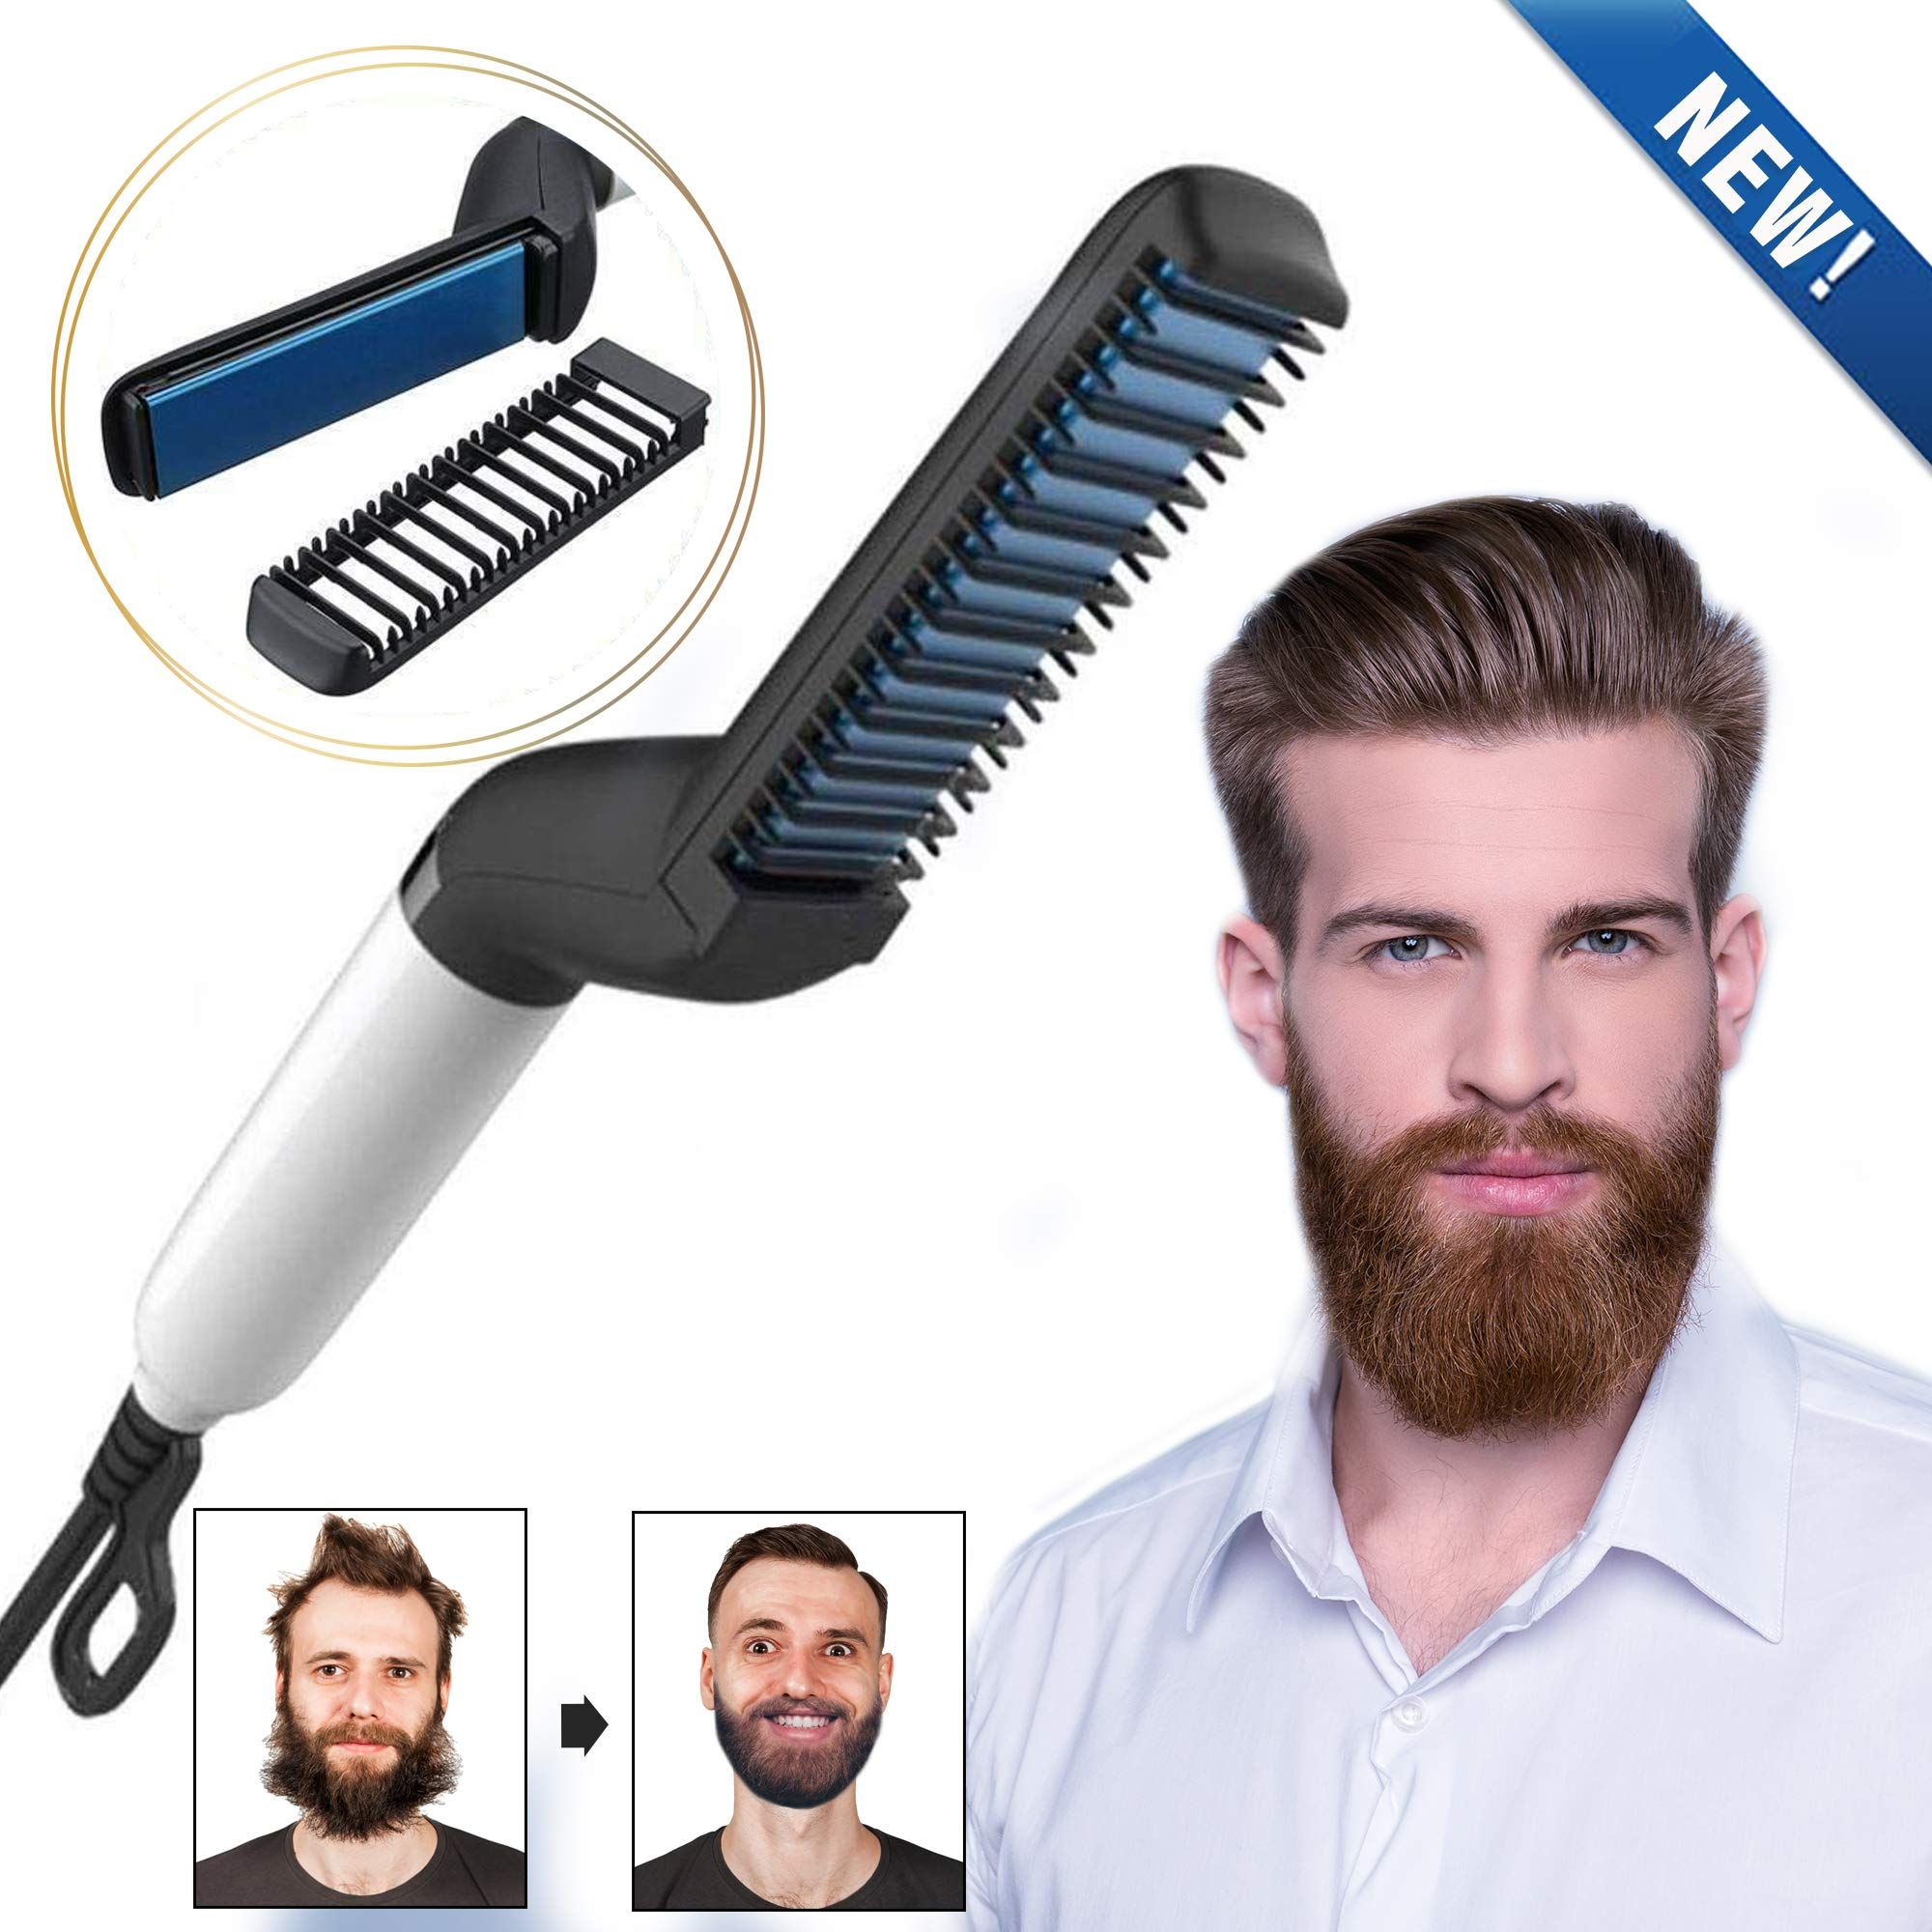 Cutie Academy Electric Beard Straightener For Men Professional Quick Styling Comb For Friz Beard Straightening Straightening Curly Hair Hair And Beard Styles